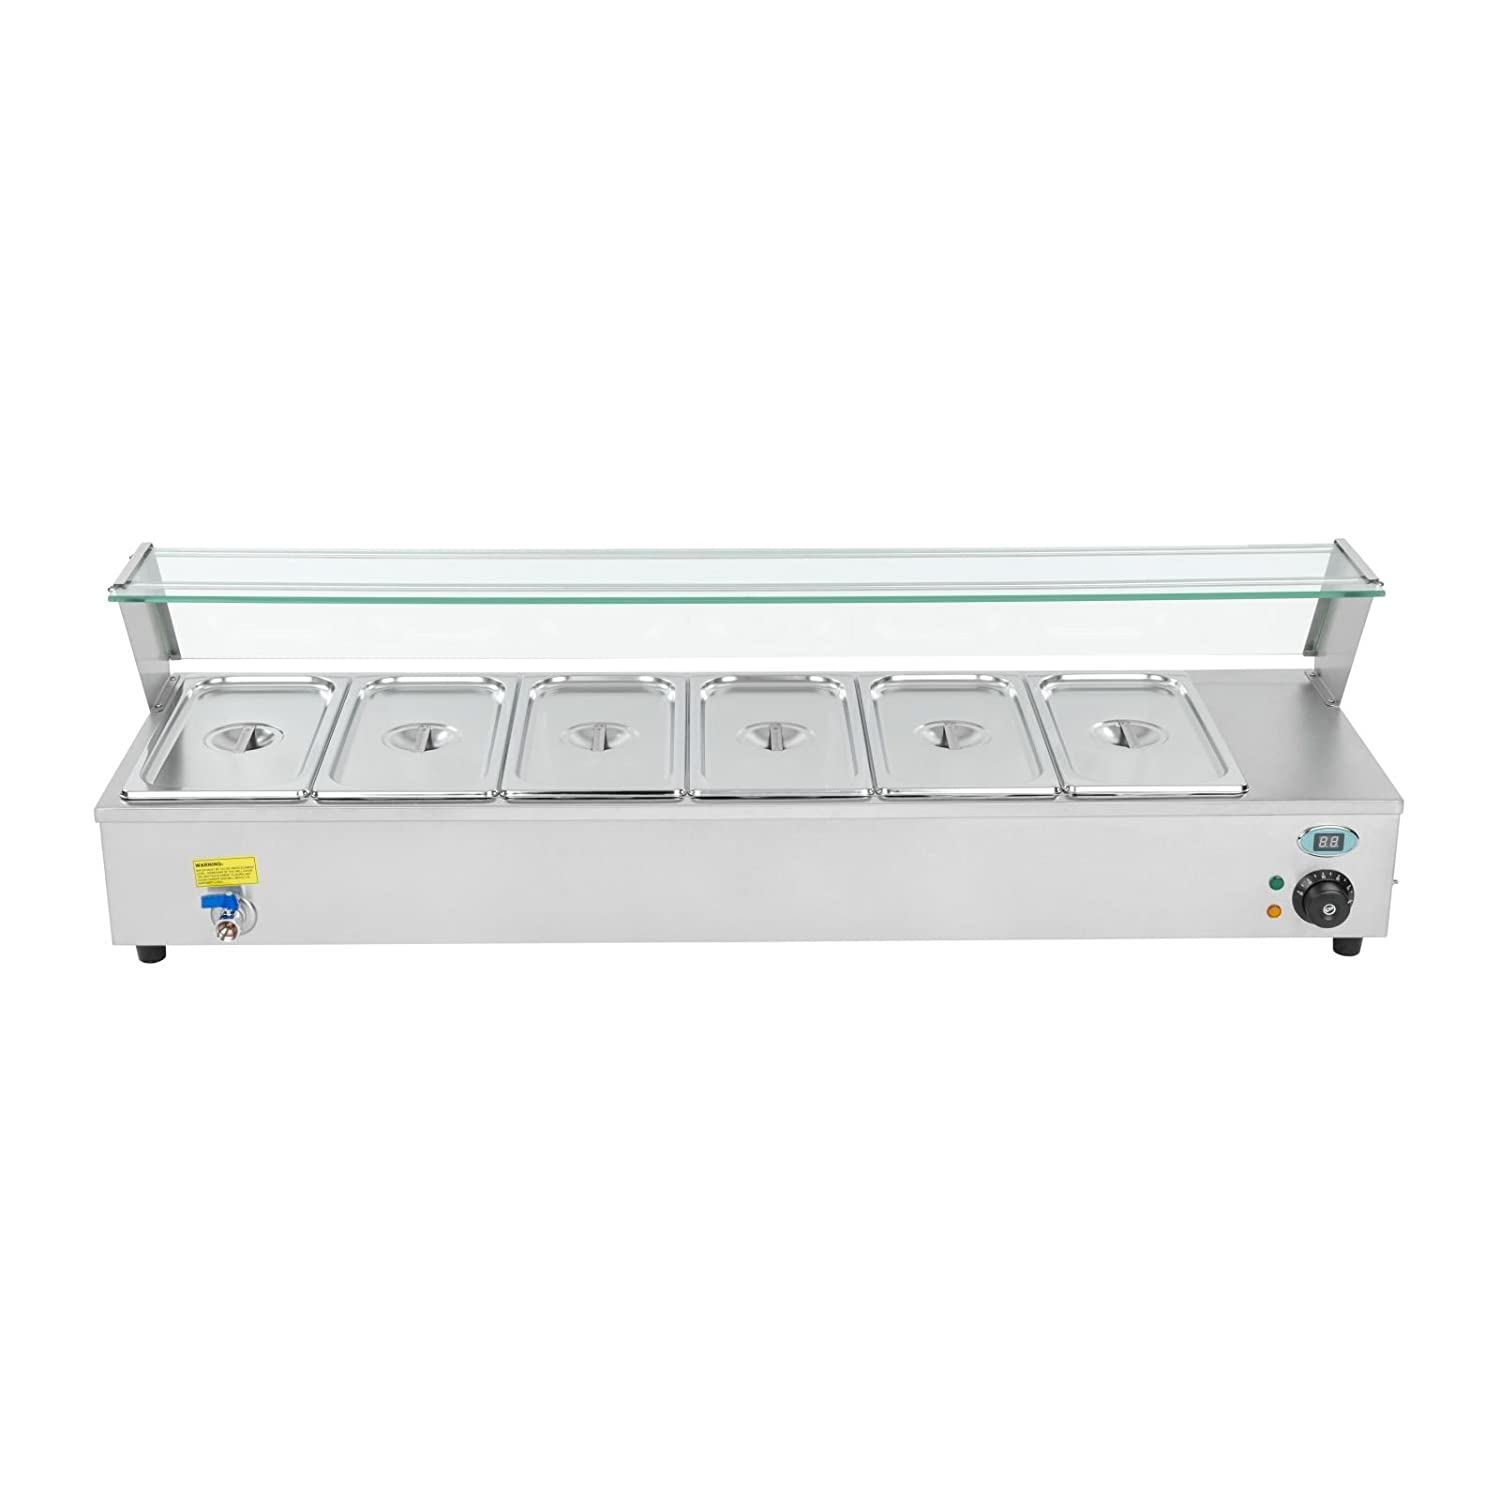 Royal Catering RCBM-63 Bain Marie/Food Warmer/Buffet Server/Buffet Warmer/6 x 1//3 GN 1800 W, 30/–90 /°C, 121,5x40x34 cm, Stainless Steel, Drain Tap, Glass Cover